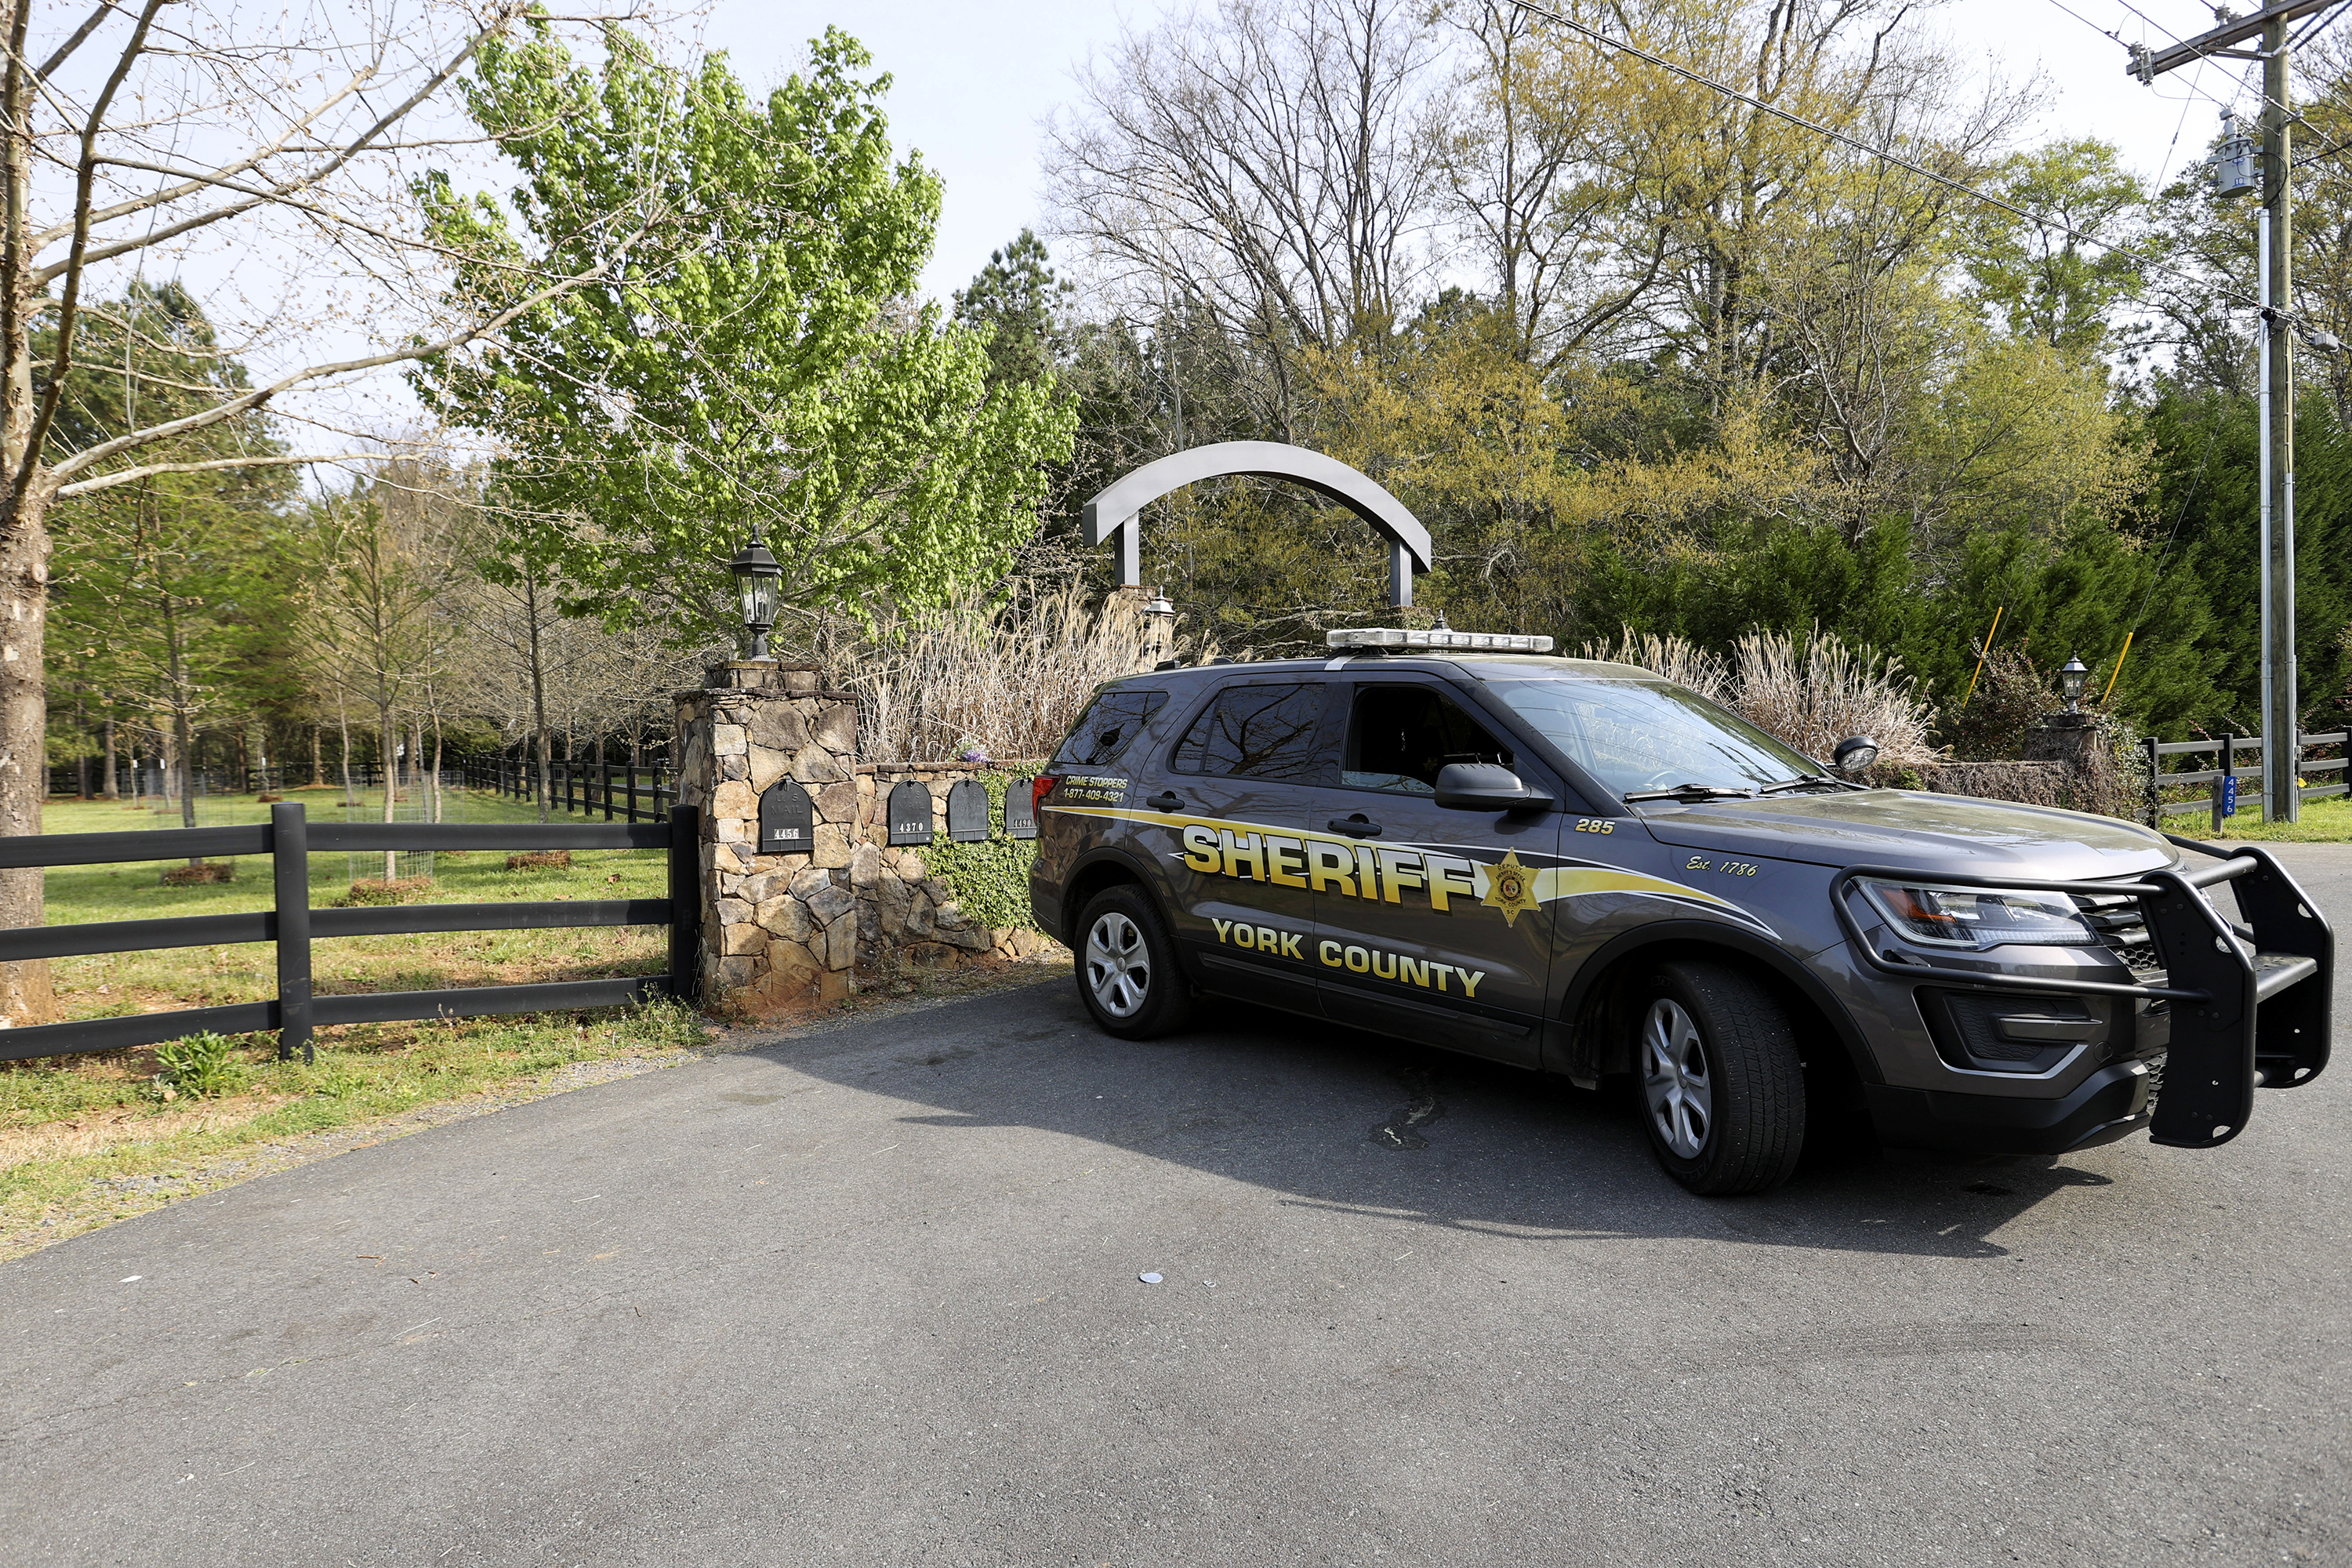 A York County sheriff's deputy is parked outside a residence where multiple people, including a prominent doctor, were fatally shot a day earlier, on April 8 in Rock Hill, S.C. (Nell Redmond/AP)